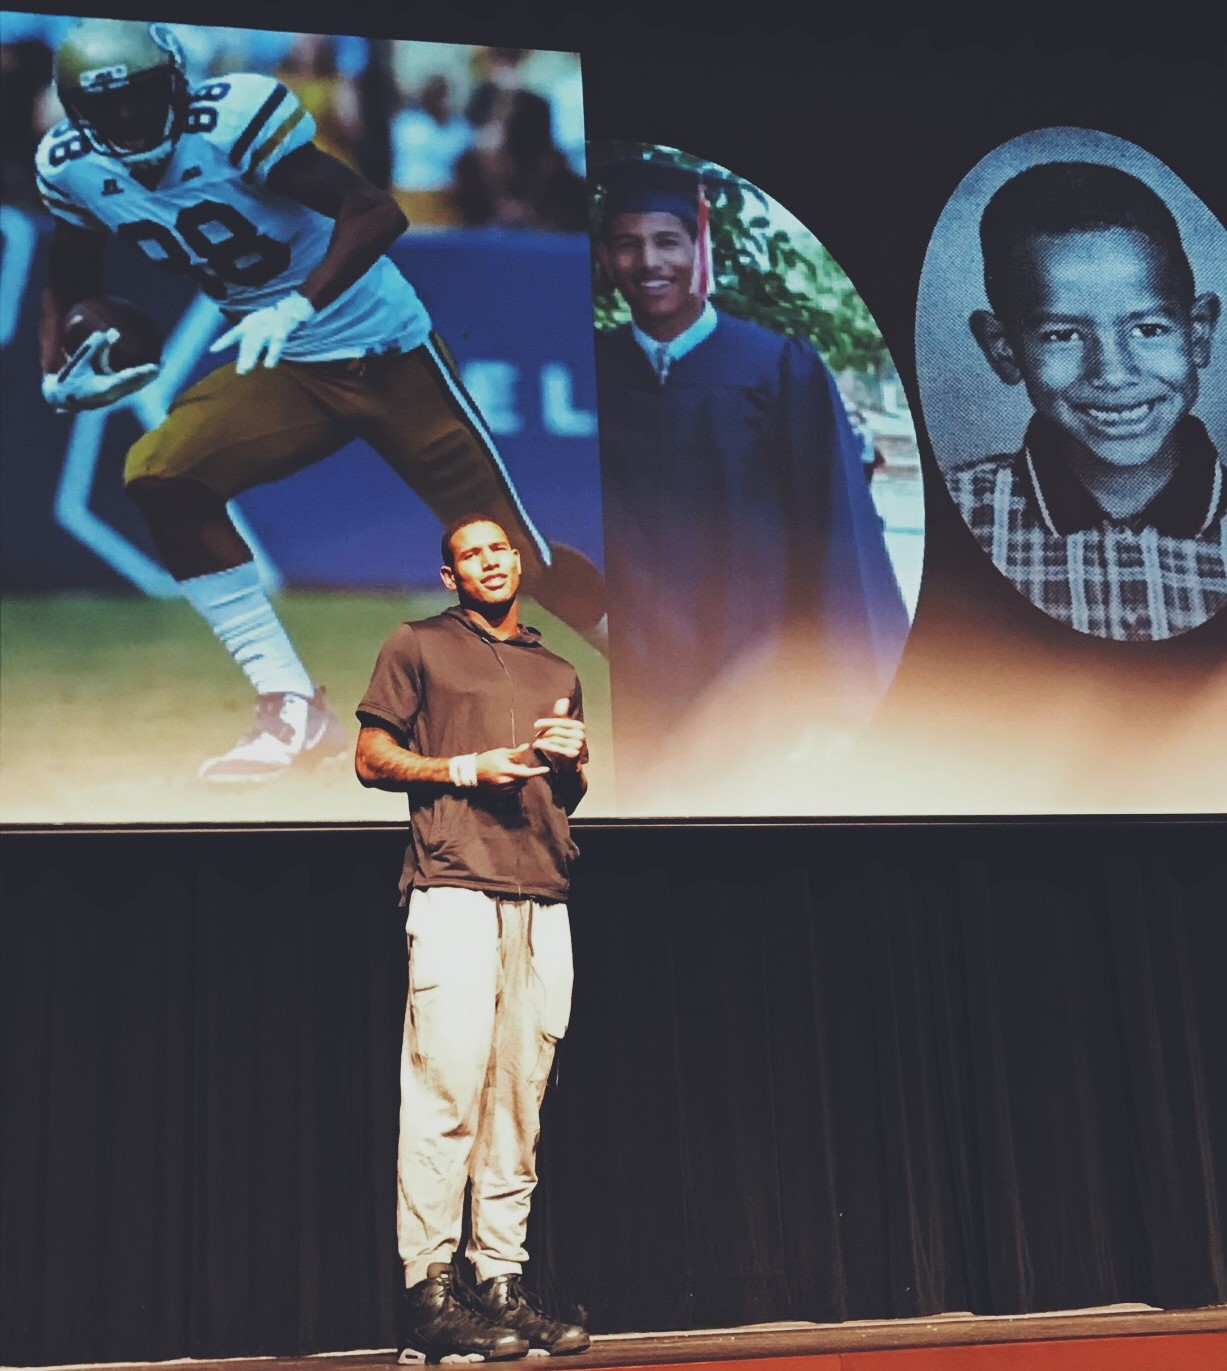 Oakland Raiders' Darren Waller stands on the stage of NC's Performing Arts Center, in front of pictures of his younger self. The theatre packed in listeners with a variety of questions to ask Waller after his emotional speech. Waller joins the crowd outside the auditorium after the presentation comes to a close, taking pictures with fans young and old.